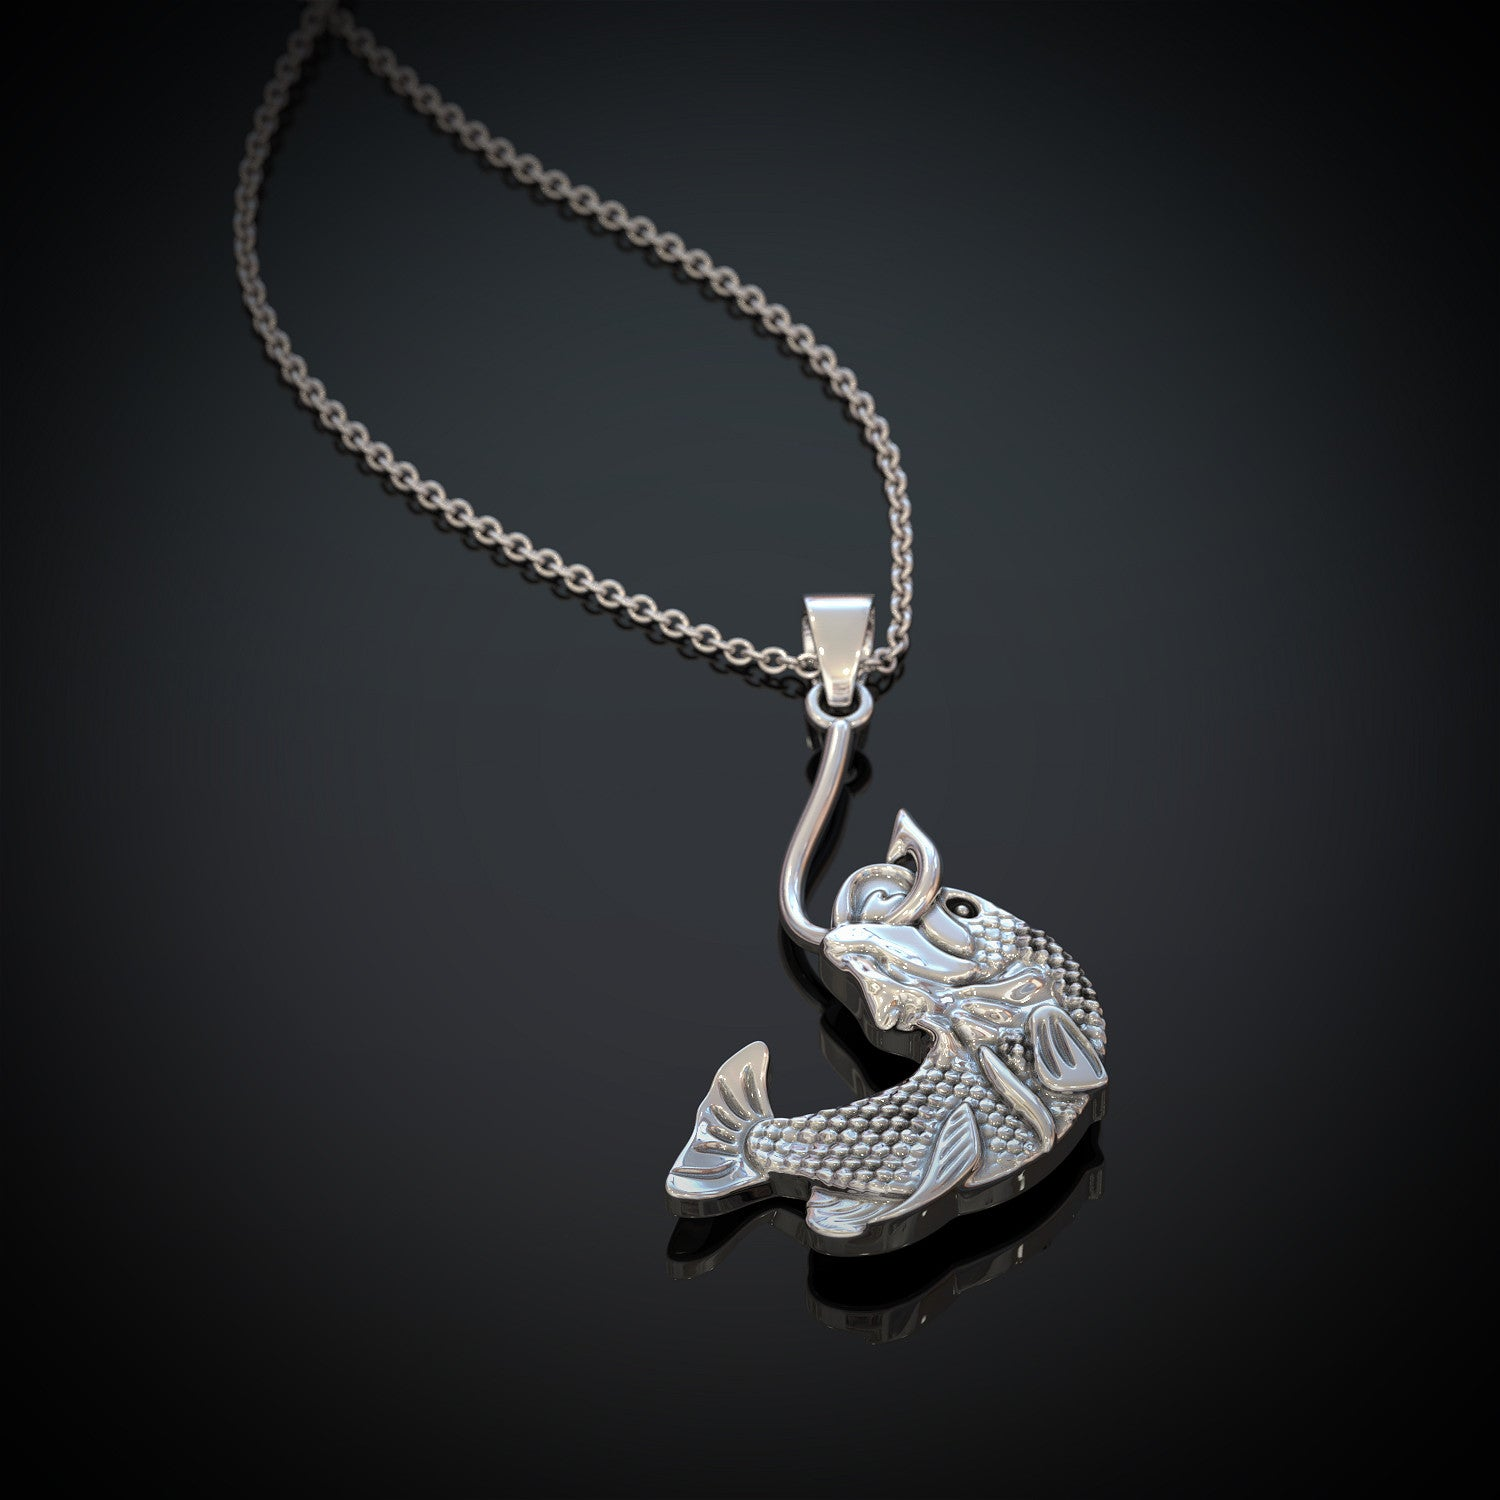 Fish on Hook Necklace - LIMITED EDITION